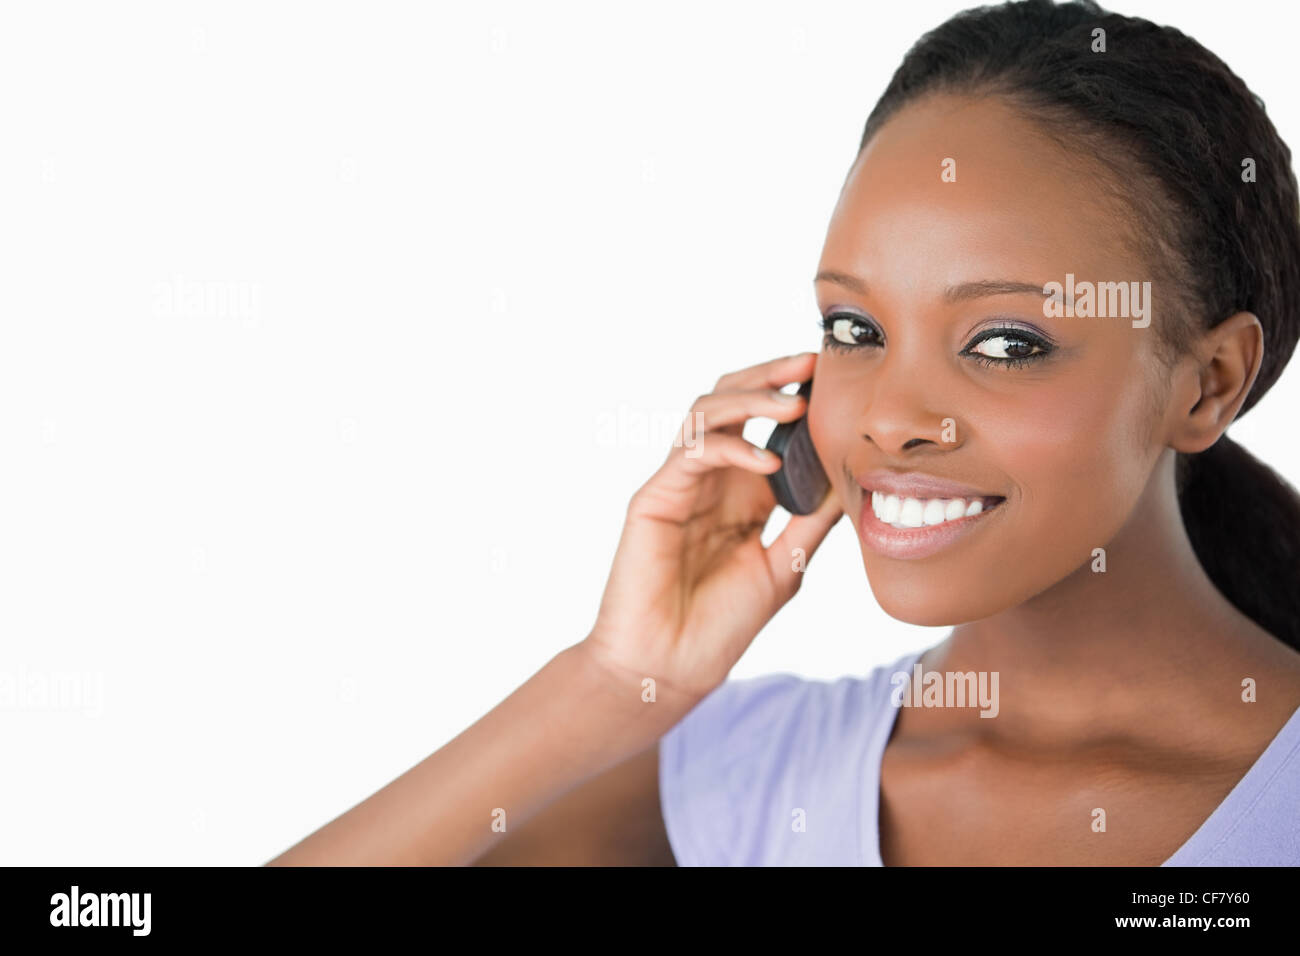 Close up of woman on the phone against a white background Stock Photo